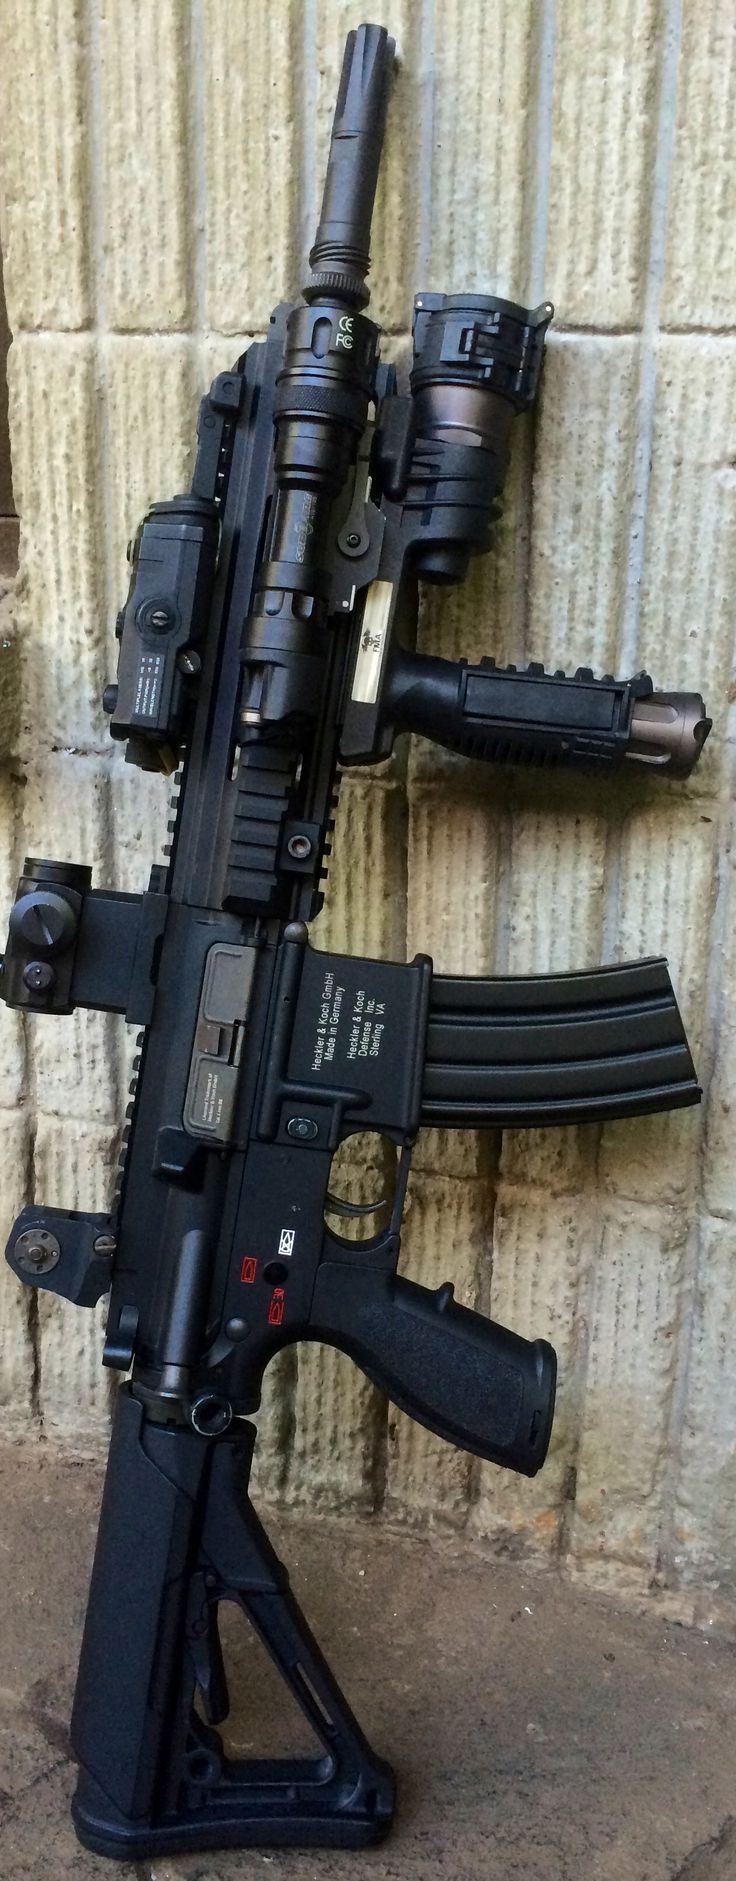 "Heckler & Koch HK416 / MR223, 10"" SBR used by the U.S. Navy Special Warfare Development Group (DEVGRU) (aka U.S. Navy SEAL Team Six - Black Ops Tier 1). Except they use H&K Suppressors, EOTech EXPS3-4 Holographic Hybrid Optic I with EOTech G33.STS 3x Magnifier , Trijicon ACOG Illuminated Red Hourseshoe Ballistic Reticle 4 x 32 LED Scope or AimPoint CompM4 (M68) Red DOT Precision Optic"